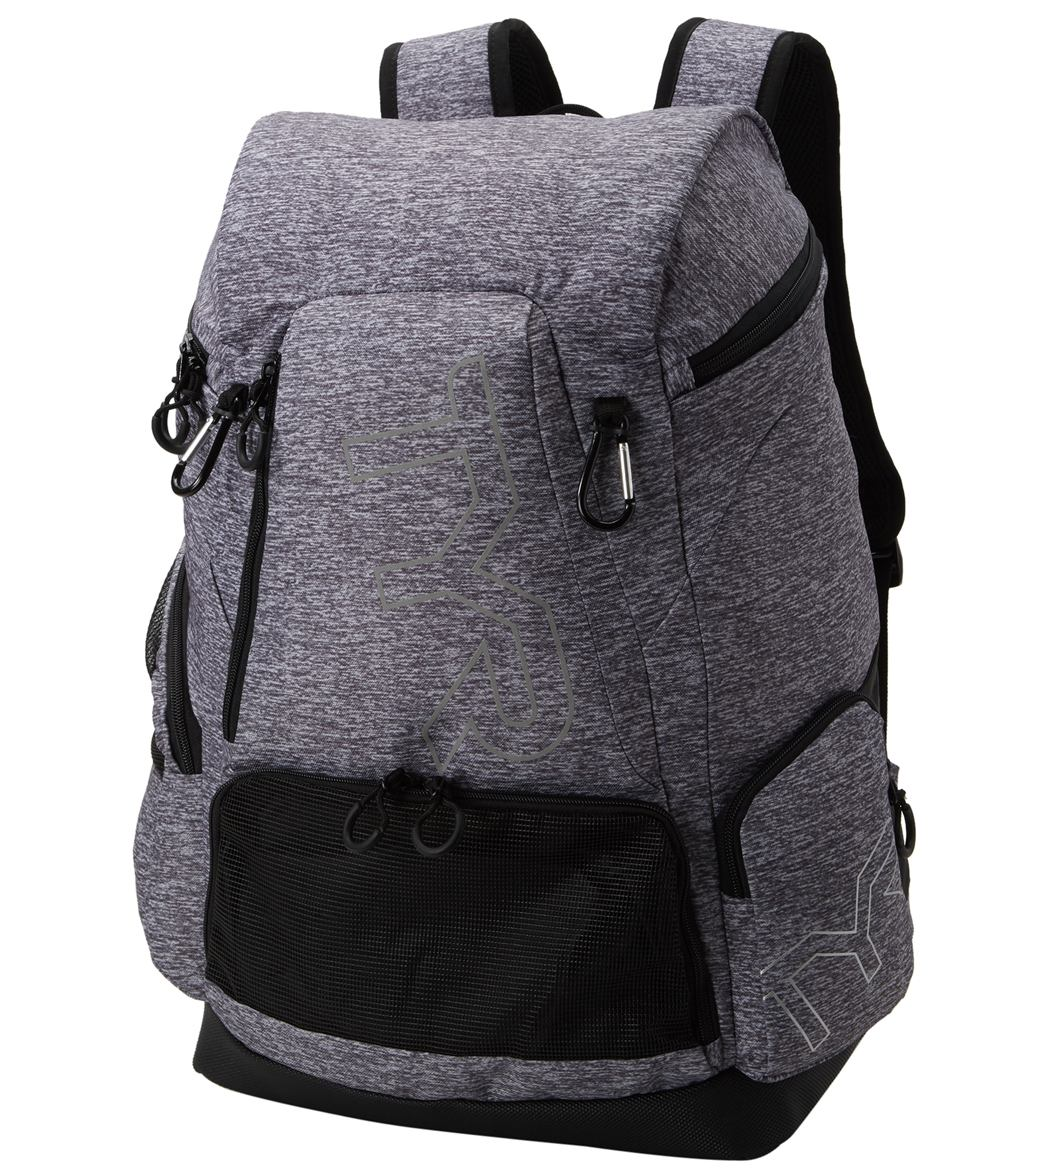 TYR Alliance 45L Heather Print Backpack at SwimOutlet.com - Free ... 12433d603d67c